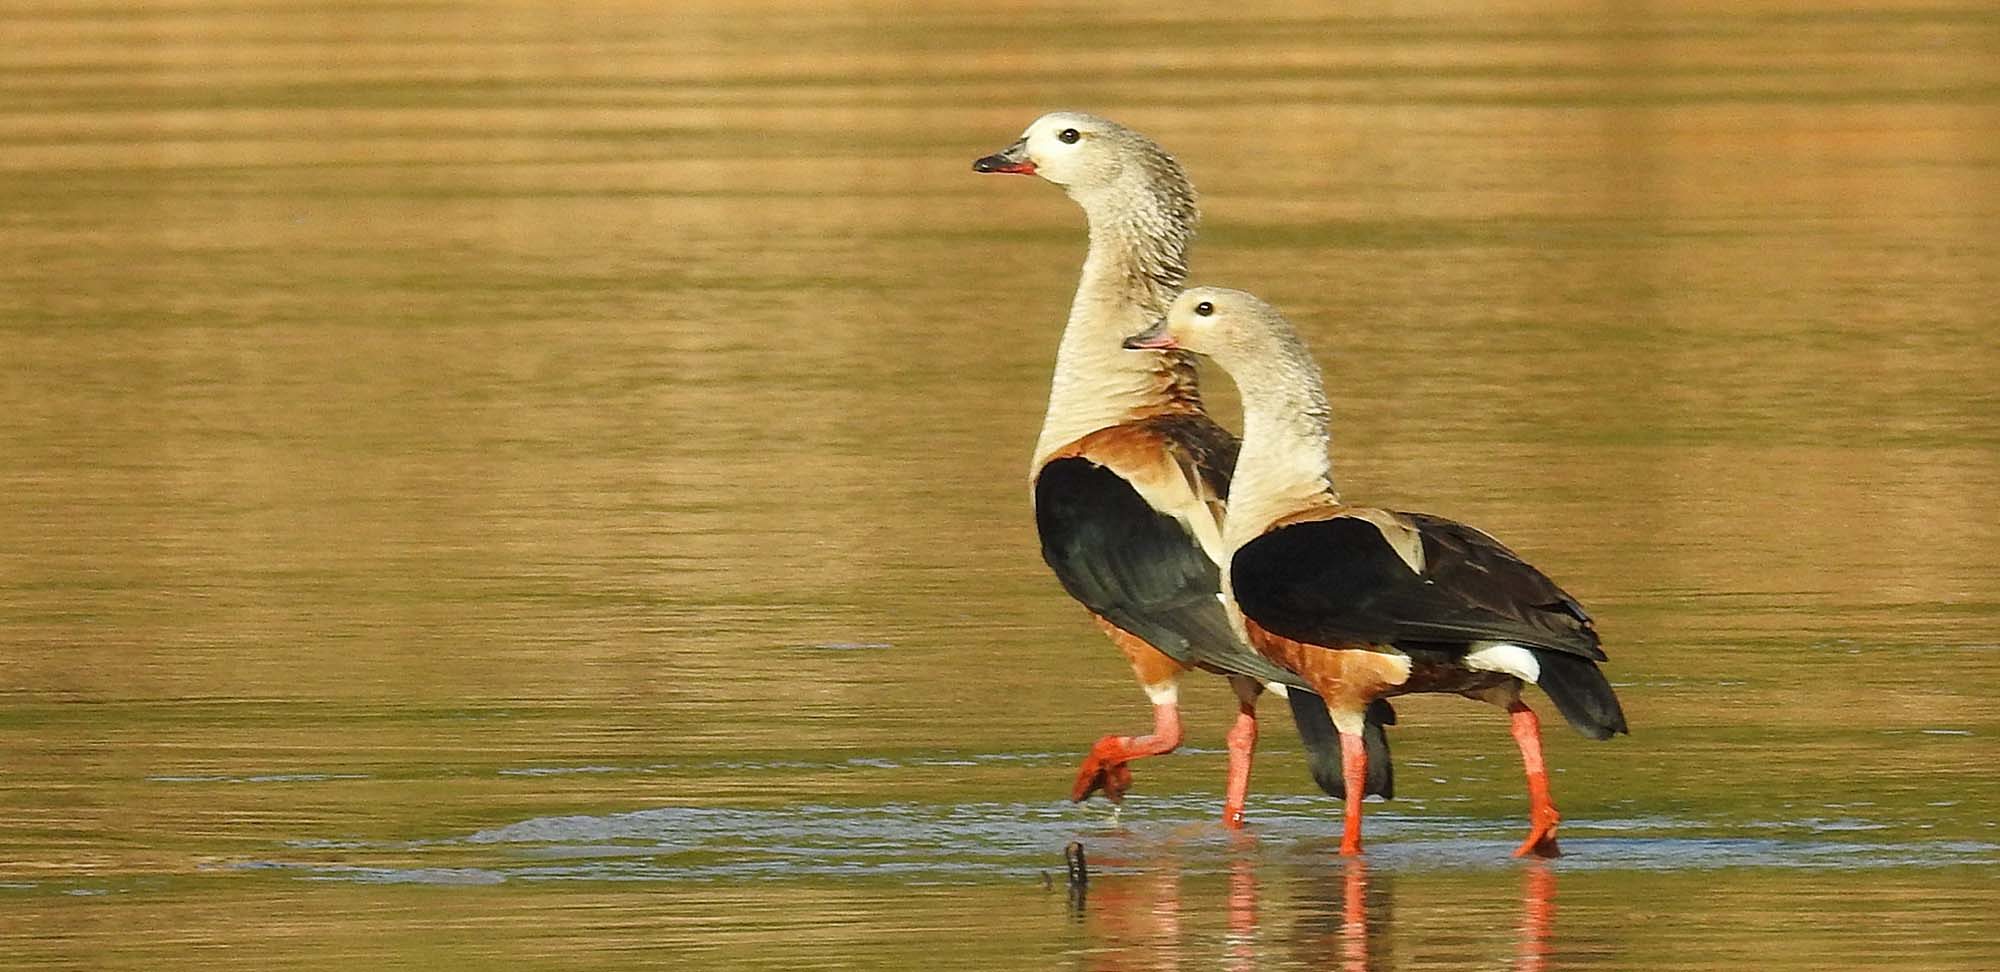 Orinoco Goose Field Guides Birding Tours Colombia